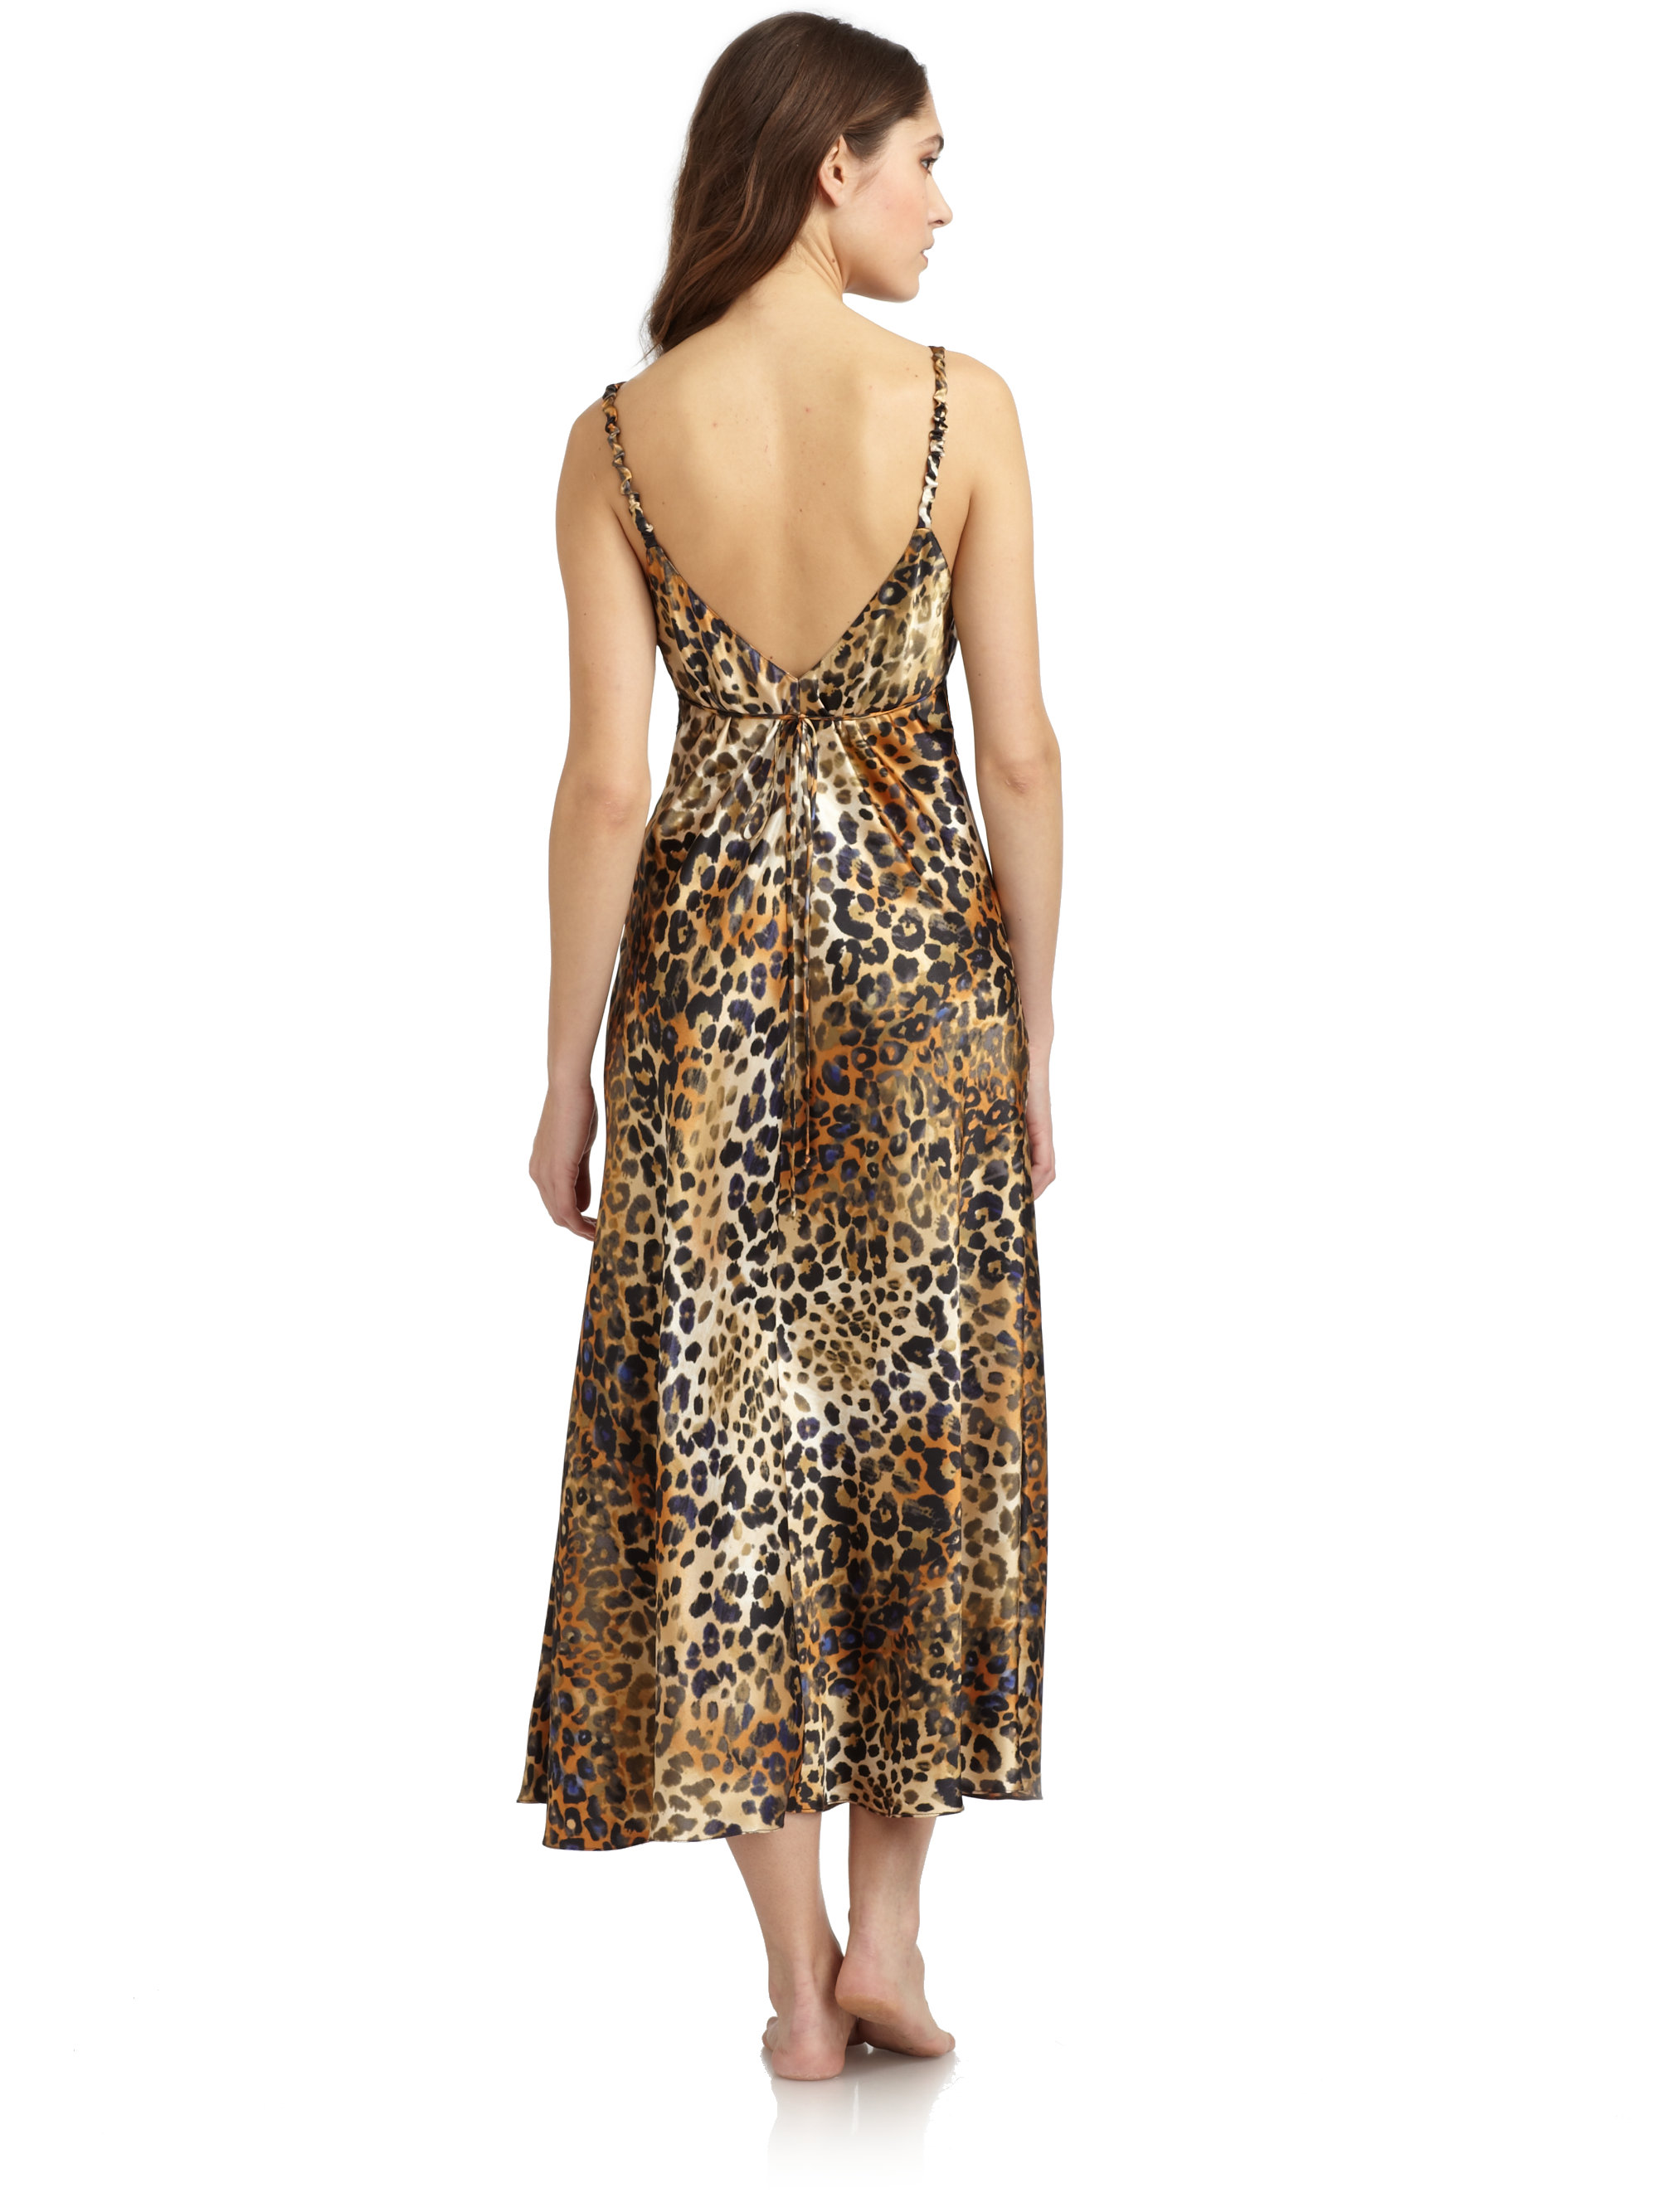 lyst oscar de la renta leopard print nightgown. Black Bedroom Furniture Sets. Home Design Ideas